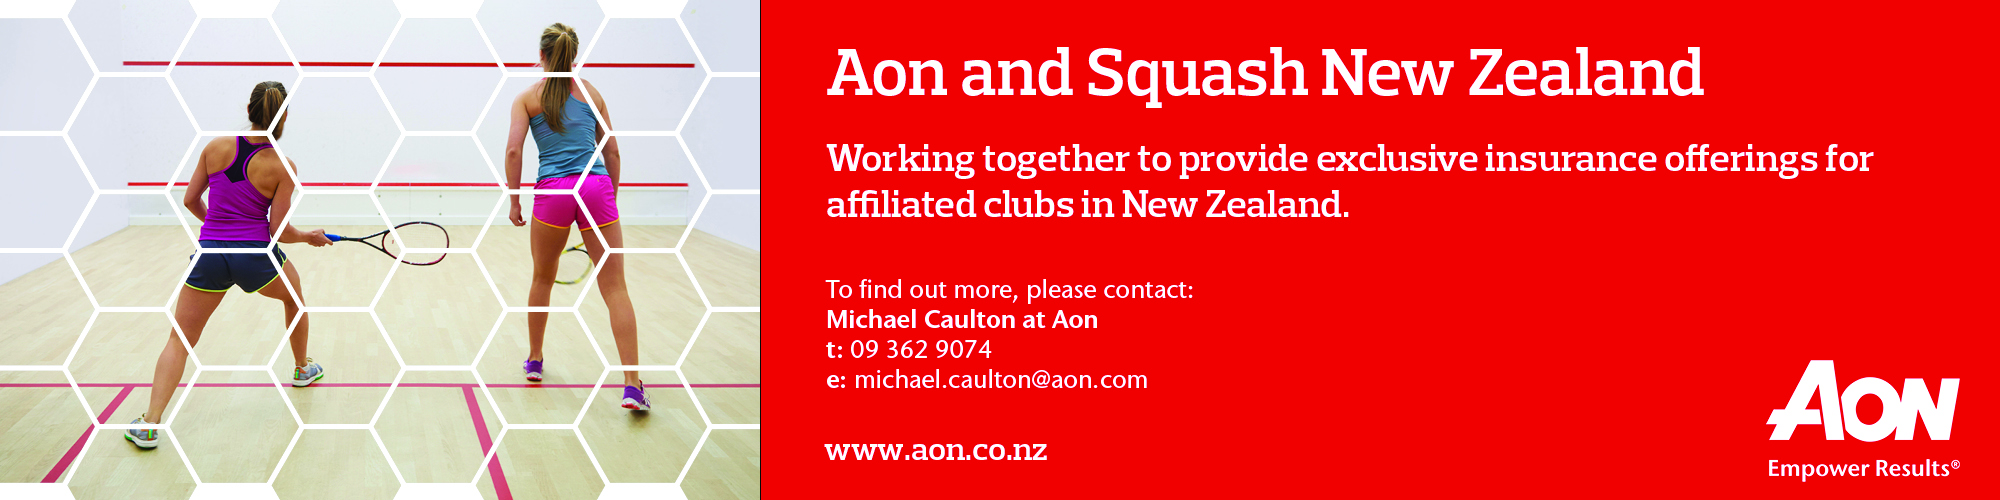 Squash NZ ad - October 2016